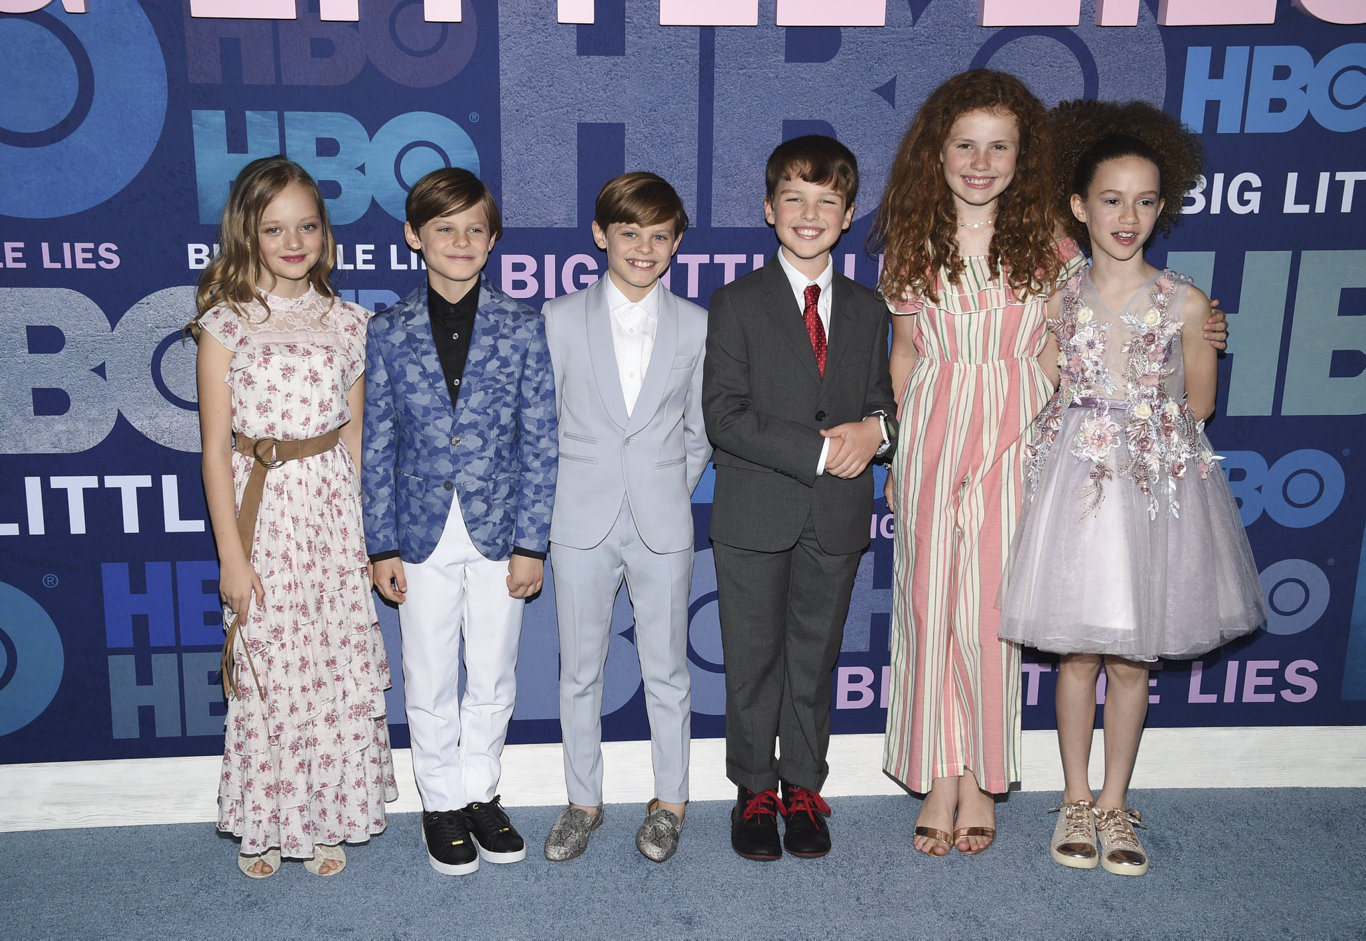 Actors, from left, Ivy George, Cameron Crovetti, Nicholas Crovetti, Iain Armitage, Darby Camp and Chloe Coleman attend the premiere of HBO's